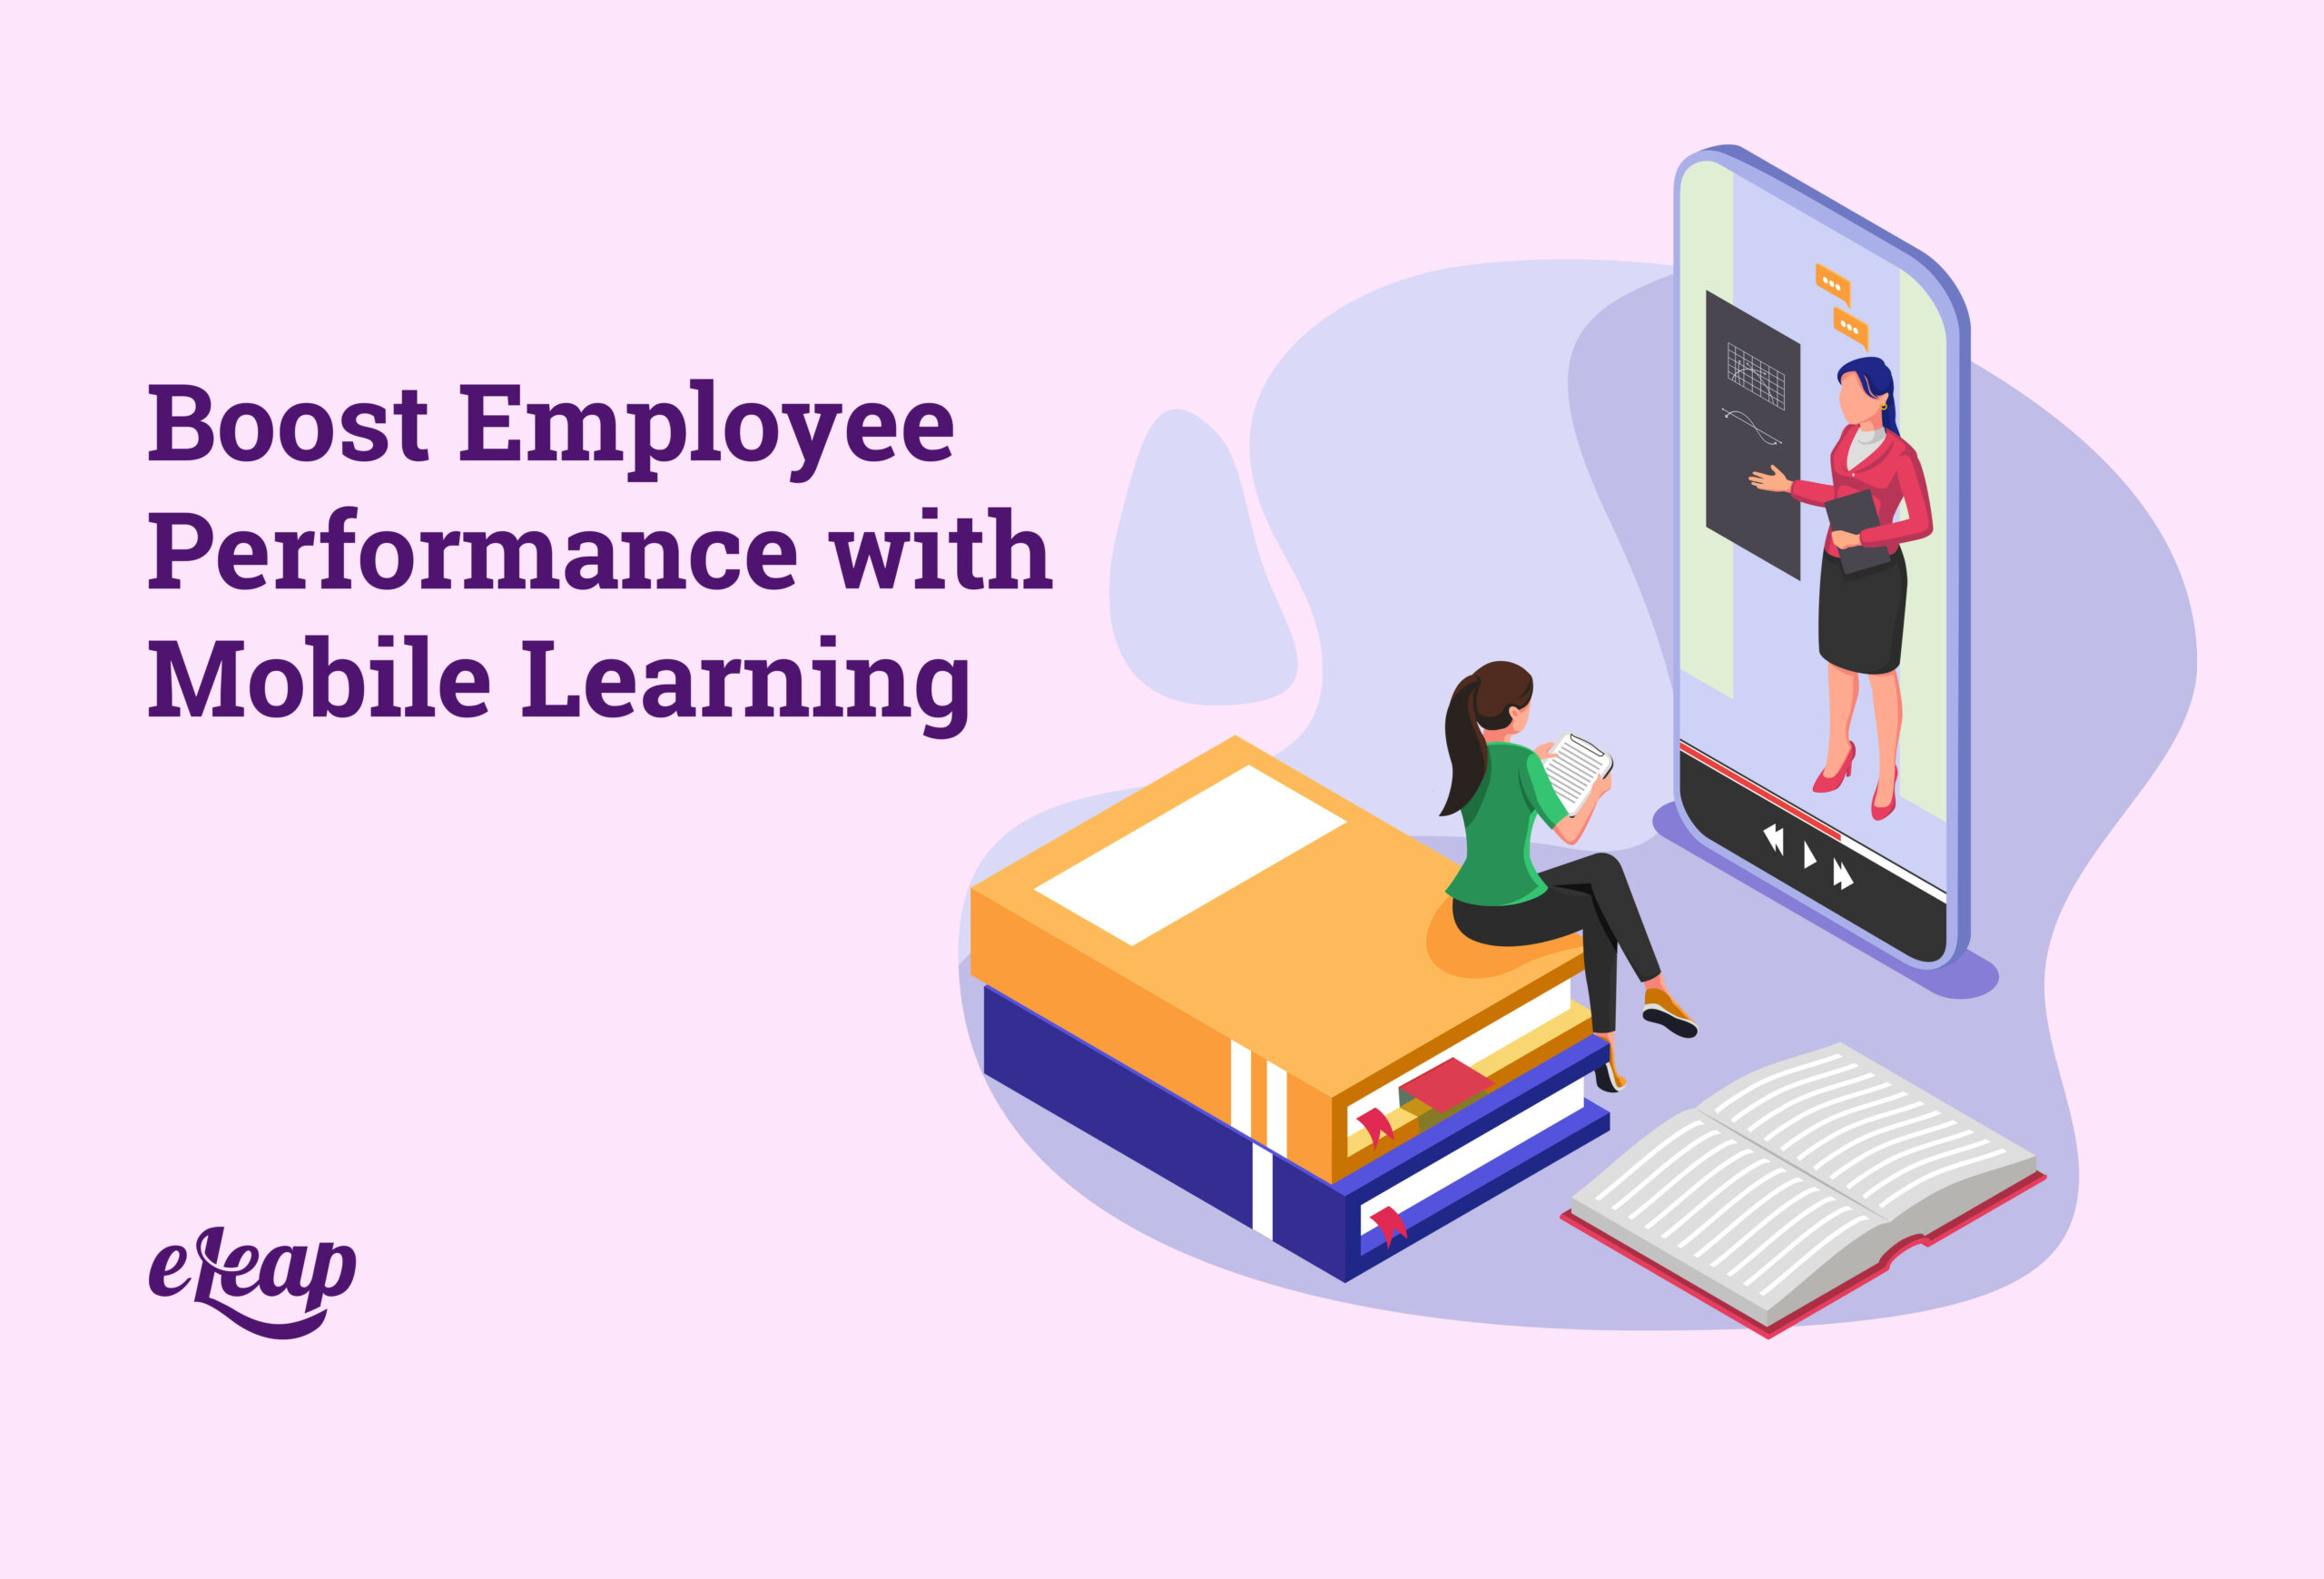 Boost Employee Performance with Mobile Learning